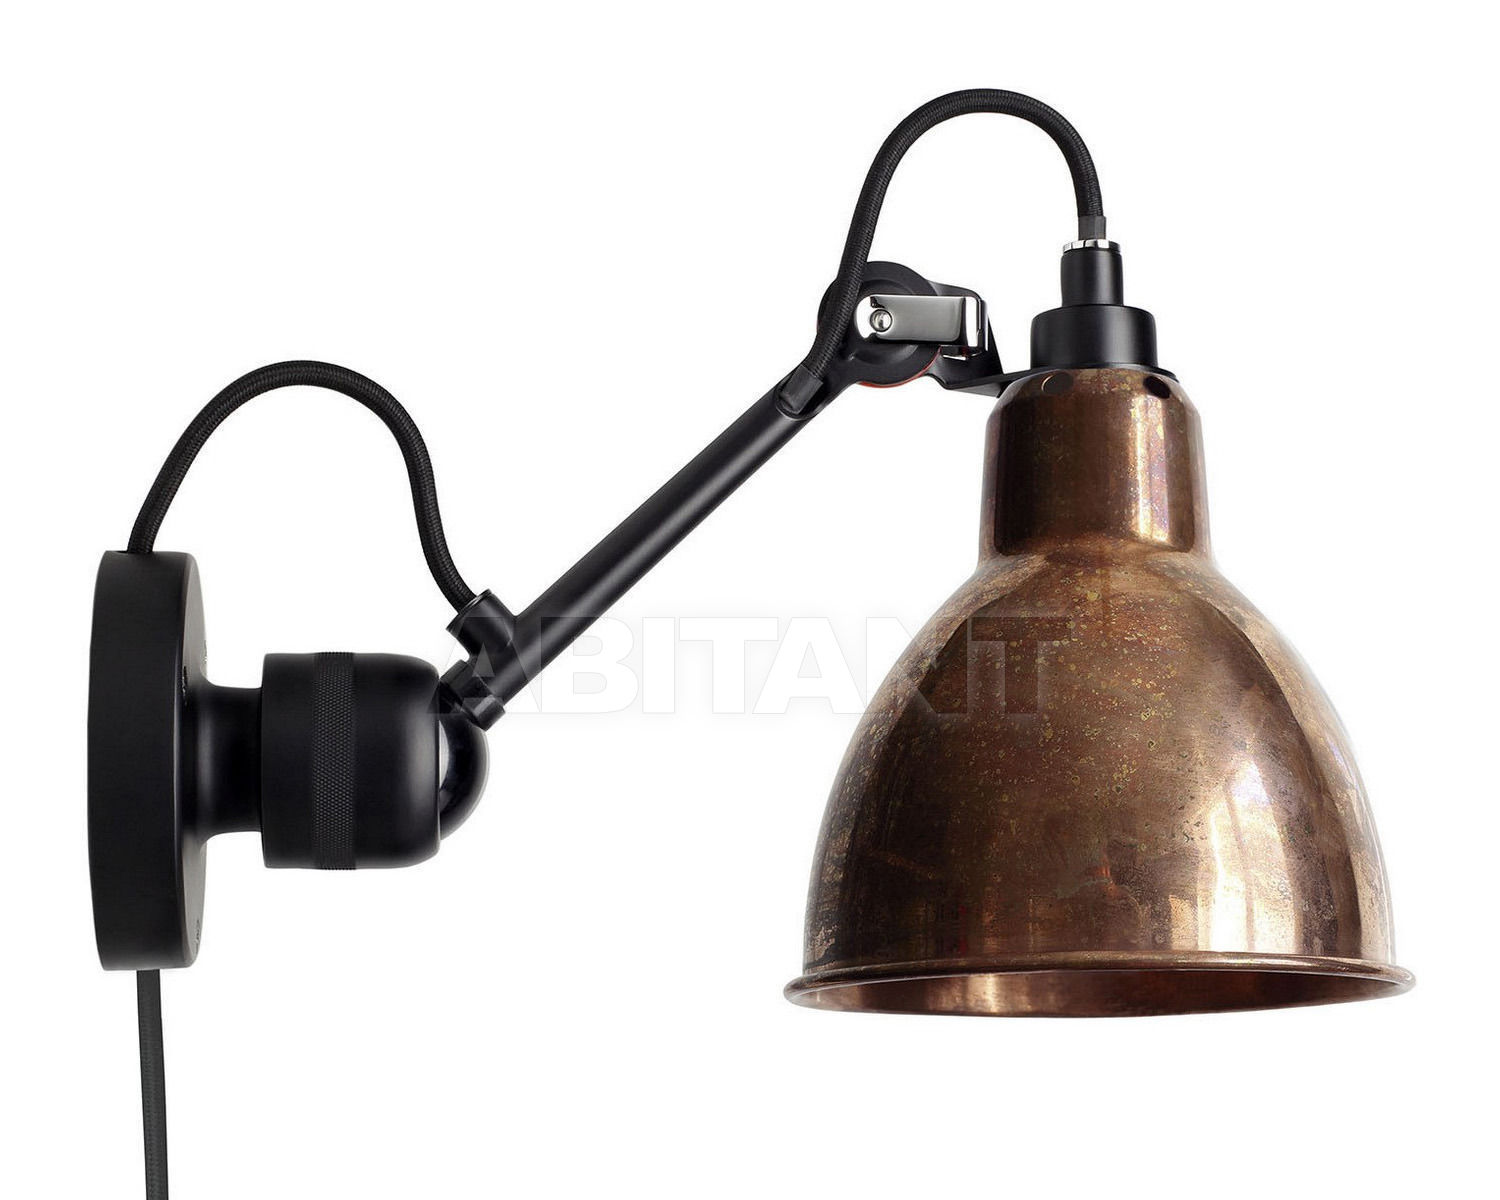 Купить Светильник настенный La Lampe Gras by DCW éditions GRAS LAMPS 304 CA BL-COP-RAW